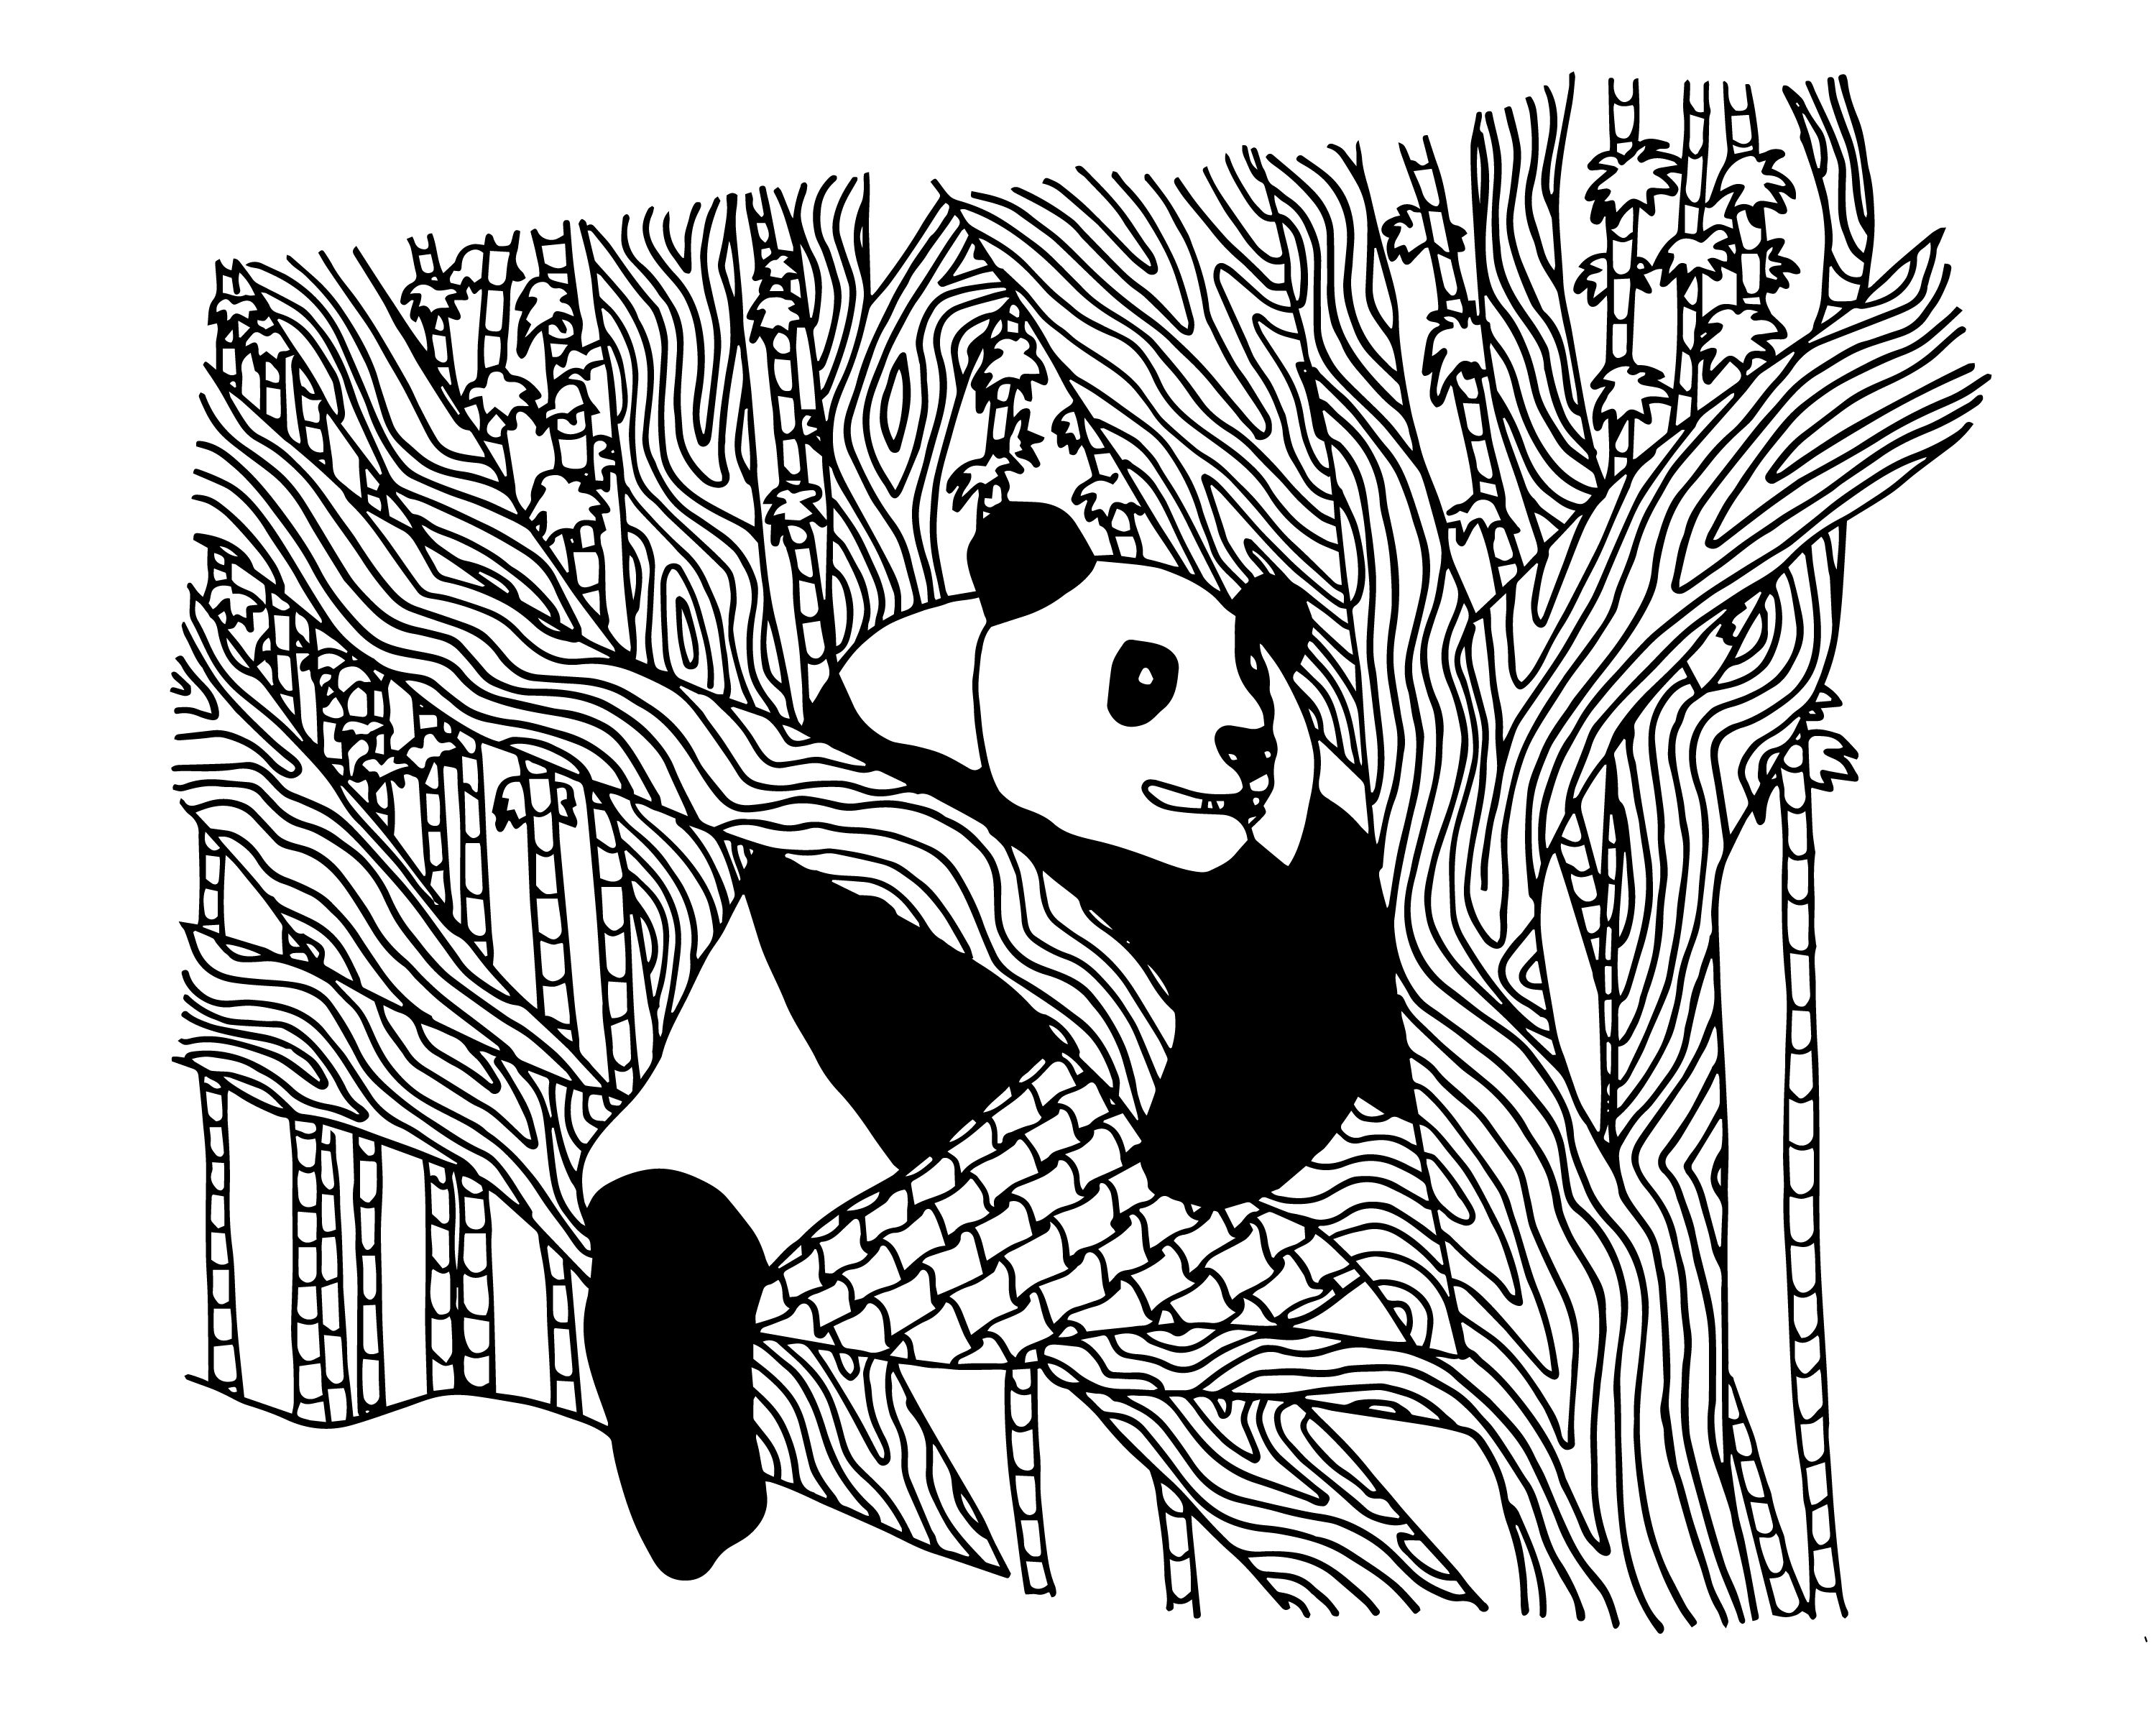 Panda Coloring Page for Adults  Panda coloring pages, Tree